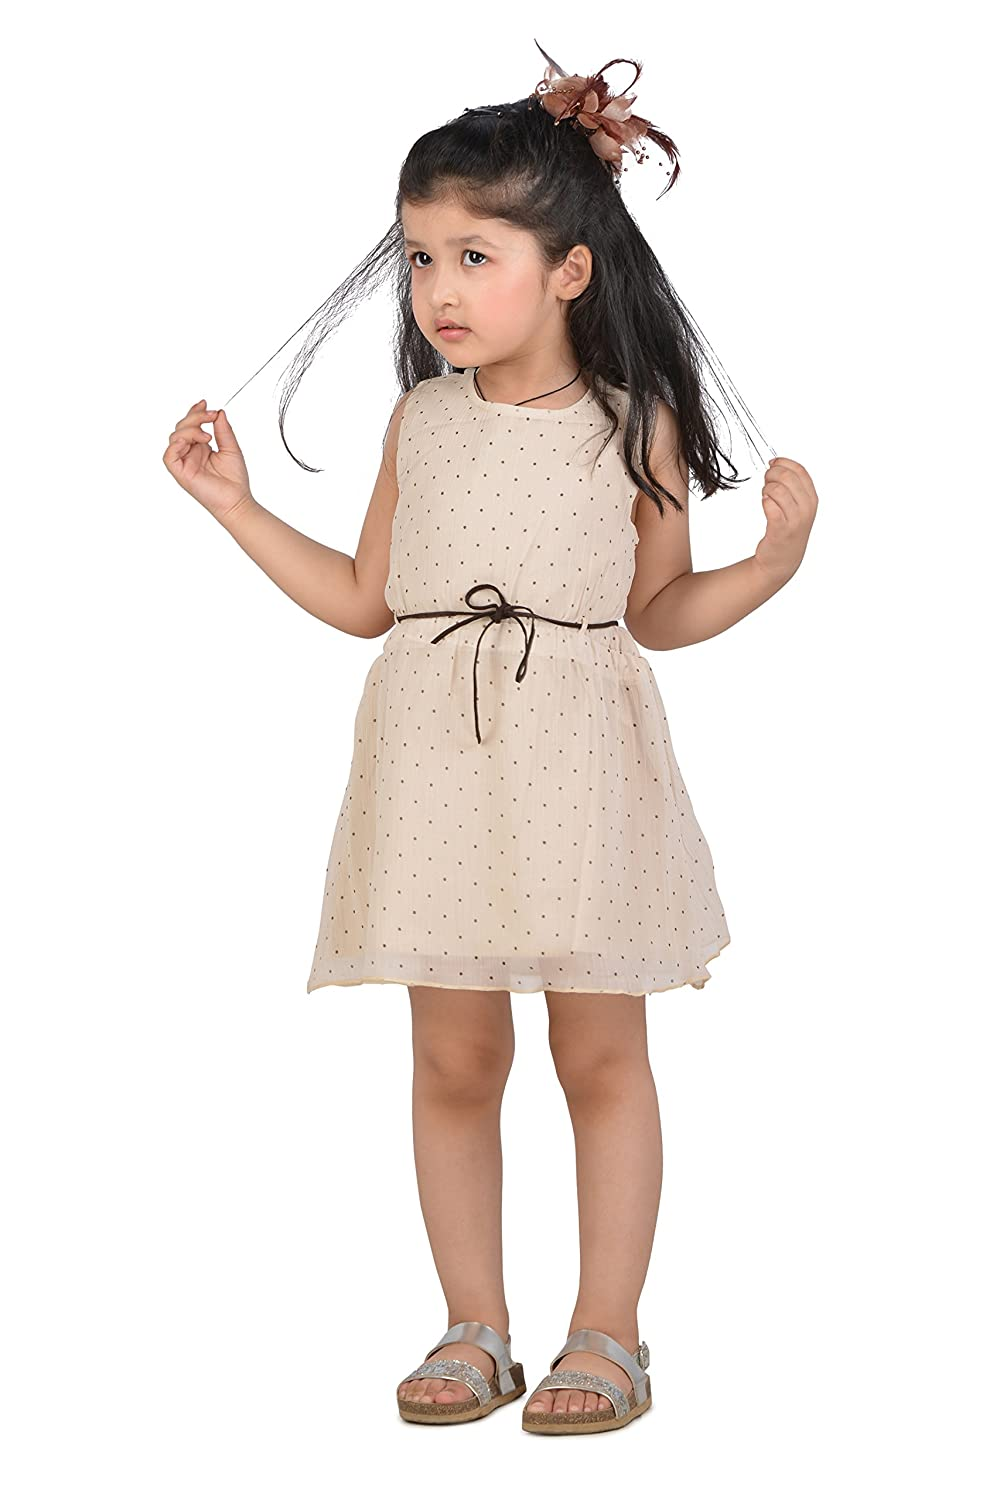 99f6b6f00dc2 KidsDew Party Wear Midi Frock Dress for Baby Girl Age 12-18 Months Beige   Amazon.in  Clothing   Accessories